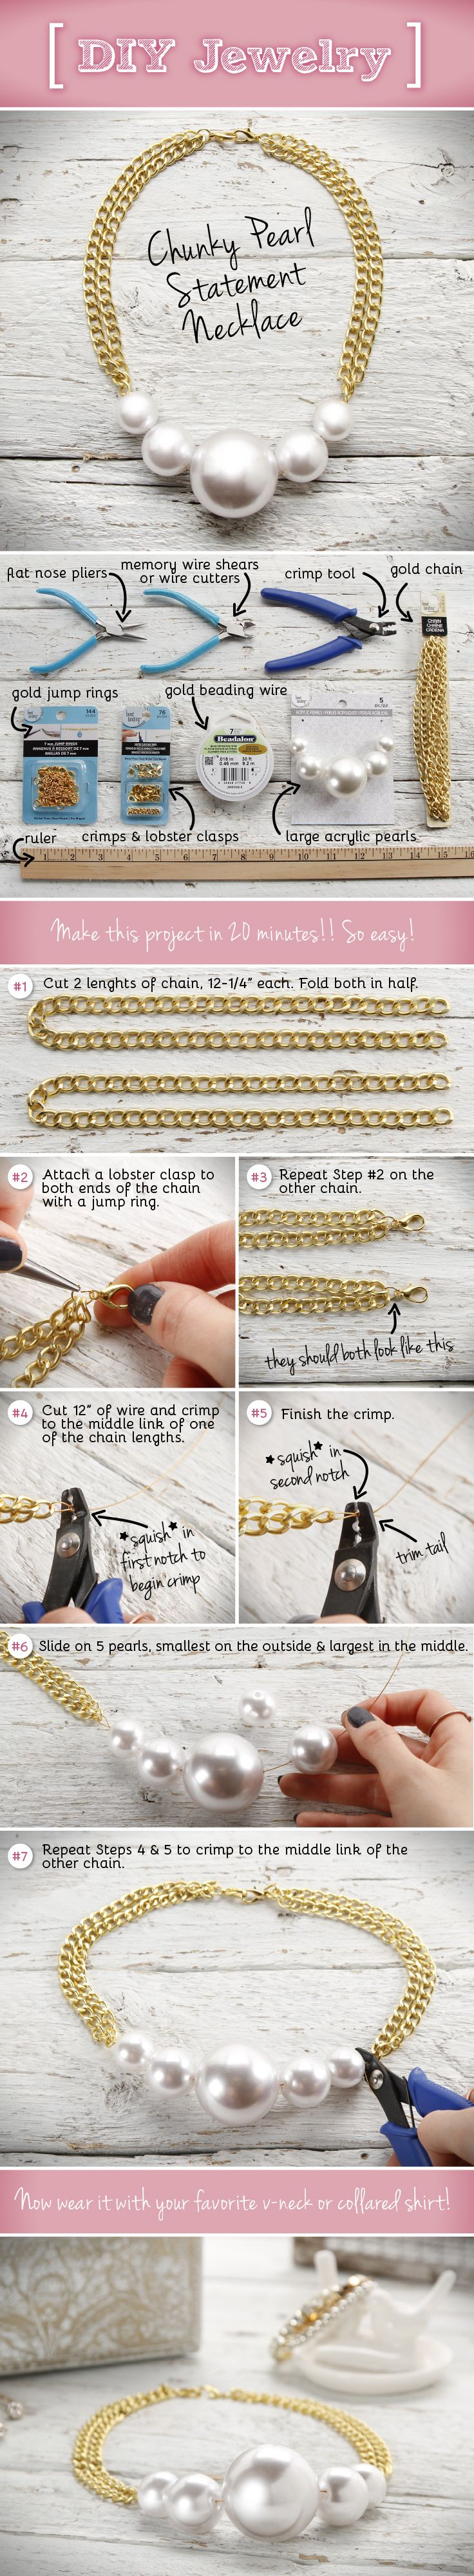 Create a fashionably trendy Chunky Pearl Statement Necklace with this easy DIY tutorial